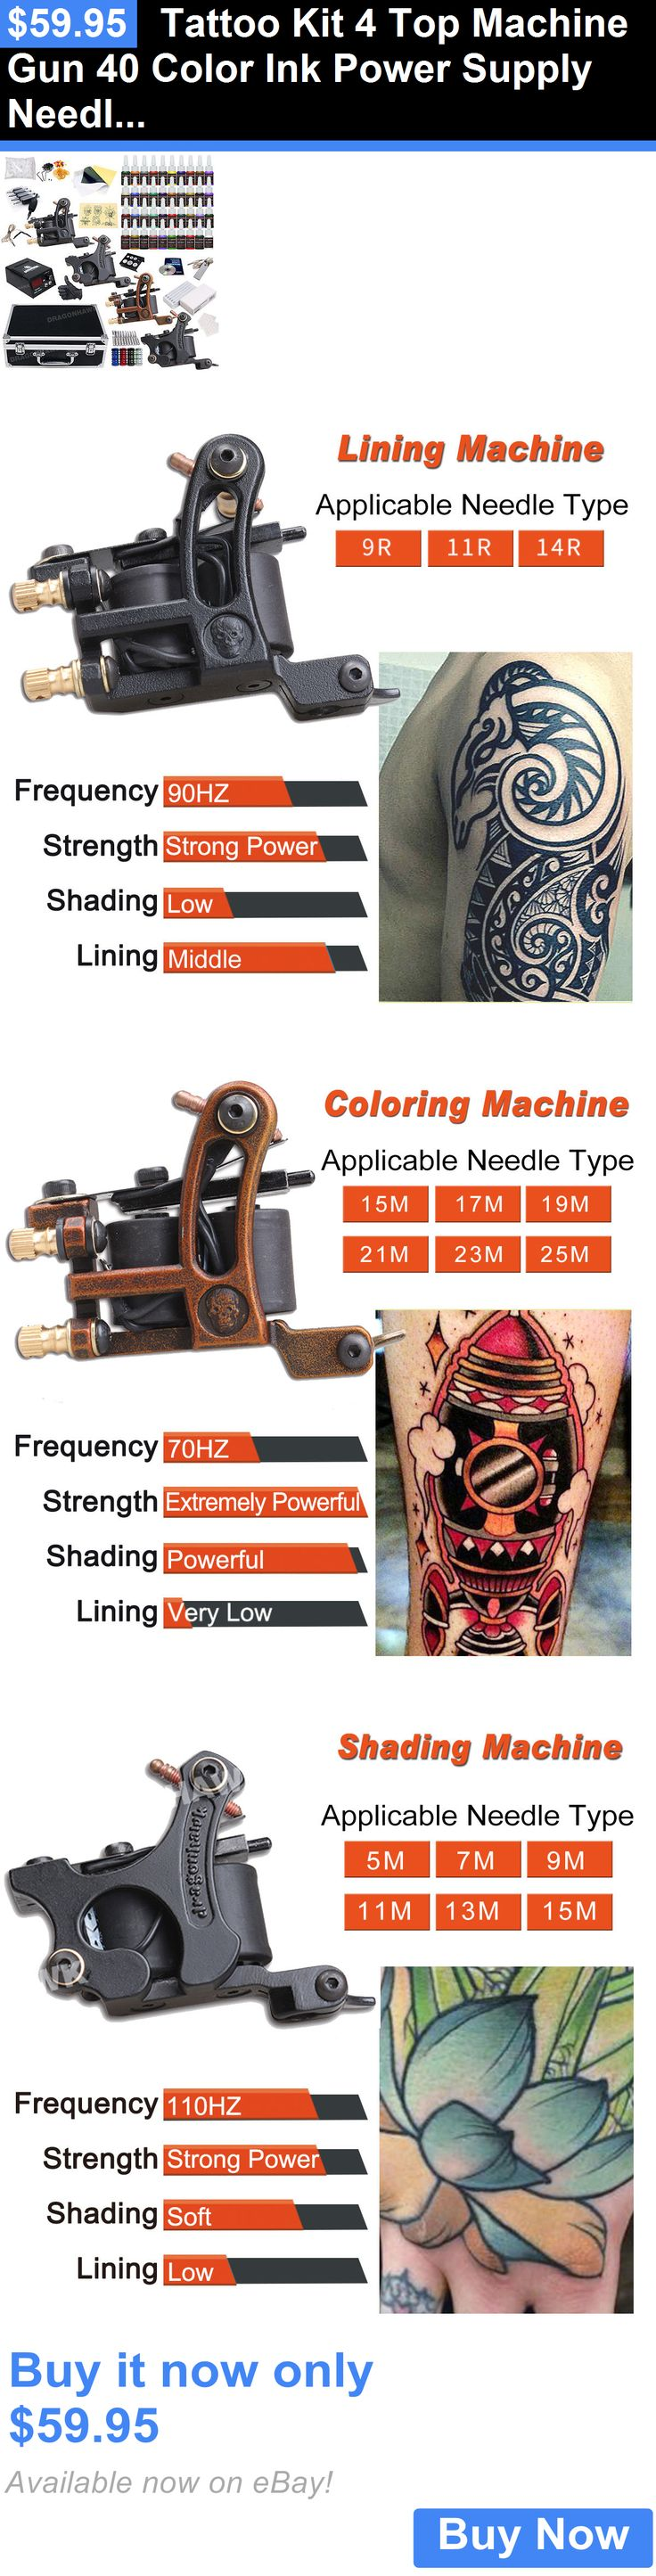 Tattoo Complete Kits: Tattoo Kit 4 Top Machine Gun 40 Color Ink Power Supply Needle Complete D139dd-11 BUY IT NOW ONLY: $59.95